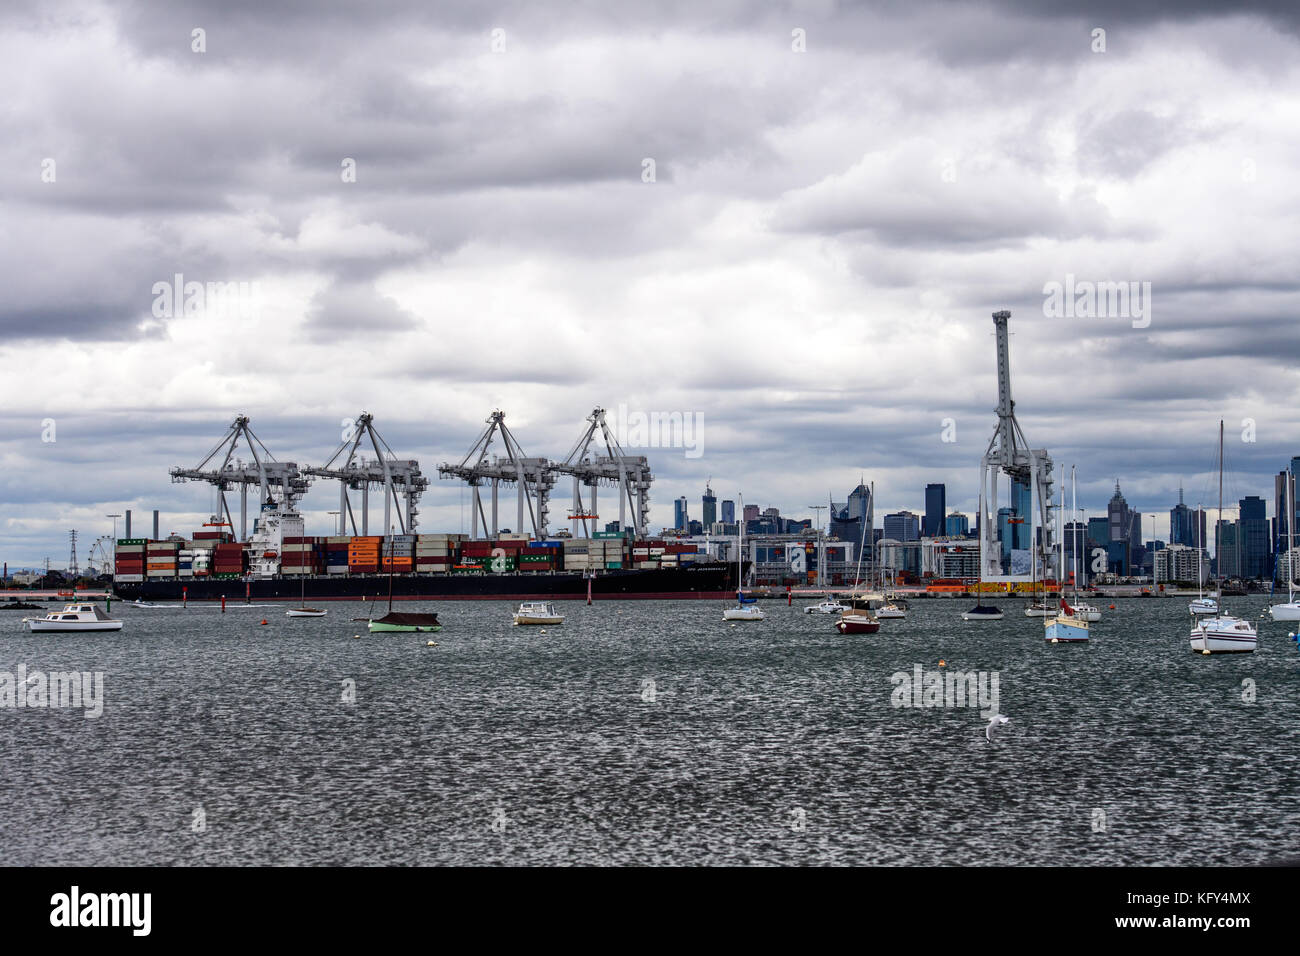 Shipping containers say Globalization - Stock Image